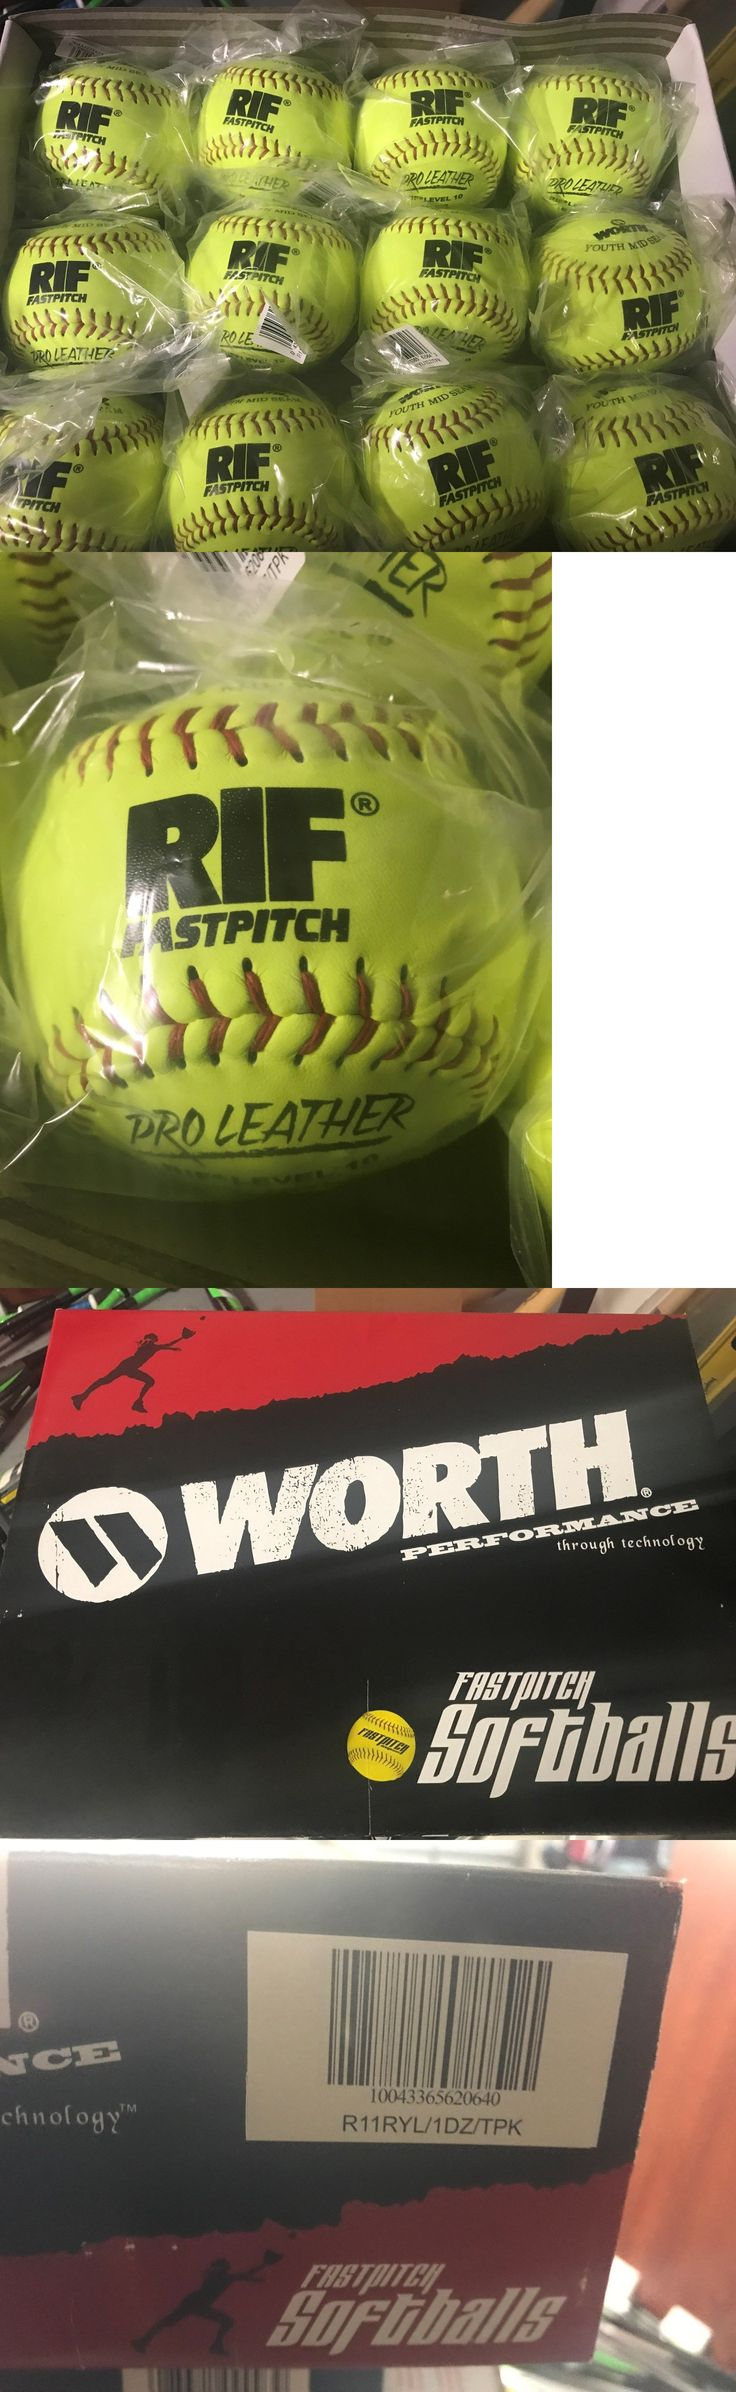 Softballs 16064: Worth Rif 11 Leather Softball Cor.47 - Yellow Pro Leather R11ryl New Sealed -> BUY IT NOW ONLY: $45.99 on eBay!